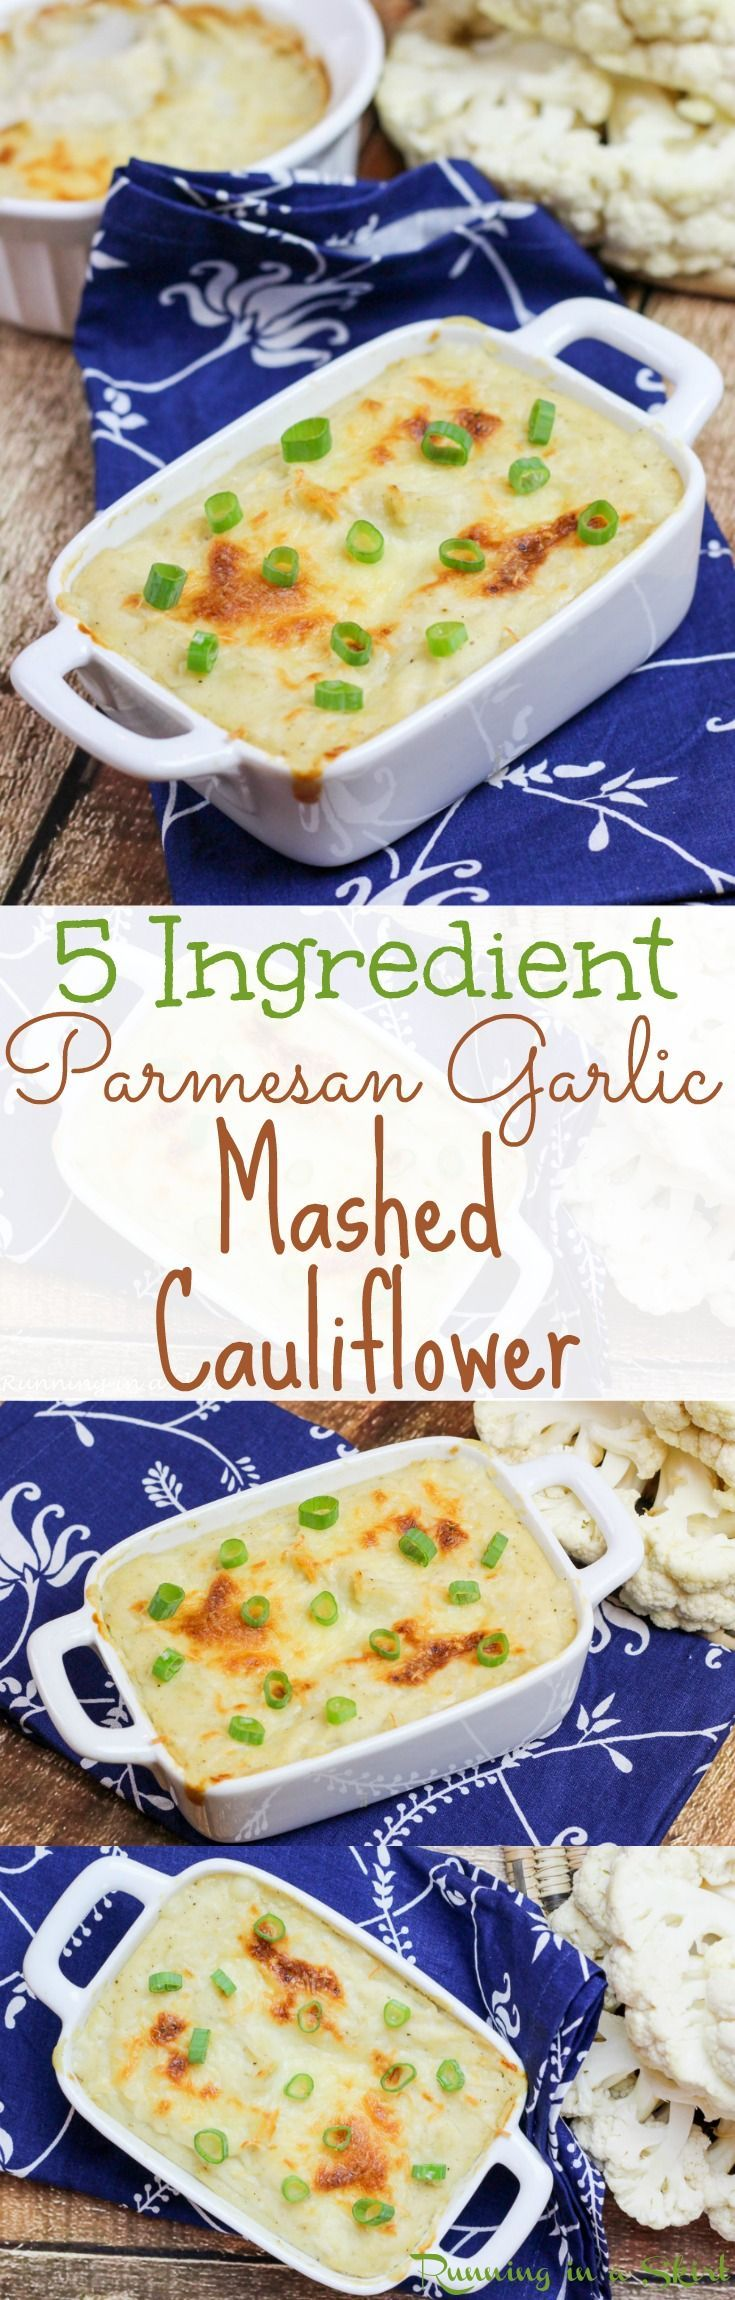 The Best 5 ingredient Parmesan Garlic Mashed Cauliflower recipe. Easy, baked and cheesy! Great healthy, low carb, skinny substitute for mashed potatoes! Love the cheese and greek yogurt in this! A quick, simple and healthy clean eating side dish. Includes detailed how to make instructions. Bake to get the crispy brown crust and can mix with a blender without food processor /  Running in a Skirt